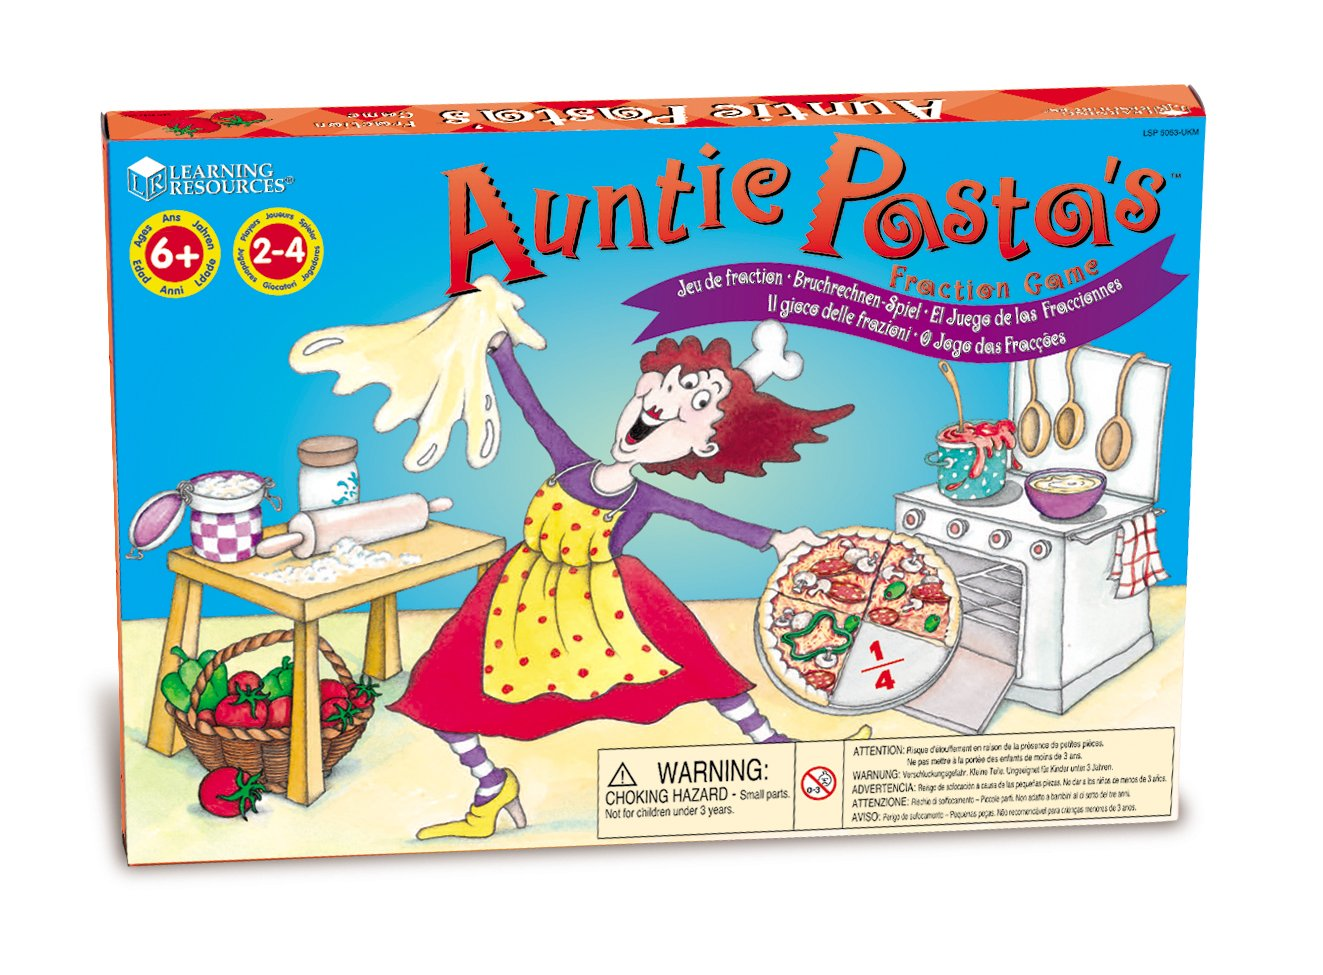 Learning Resources Auntie Pasta's Fraction Game by Learning Resources